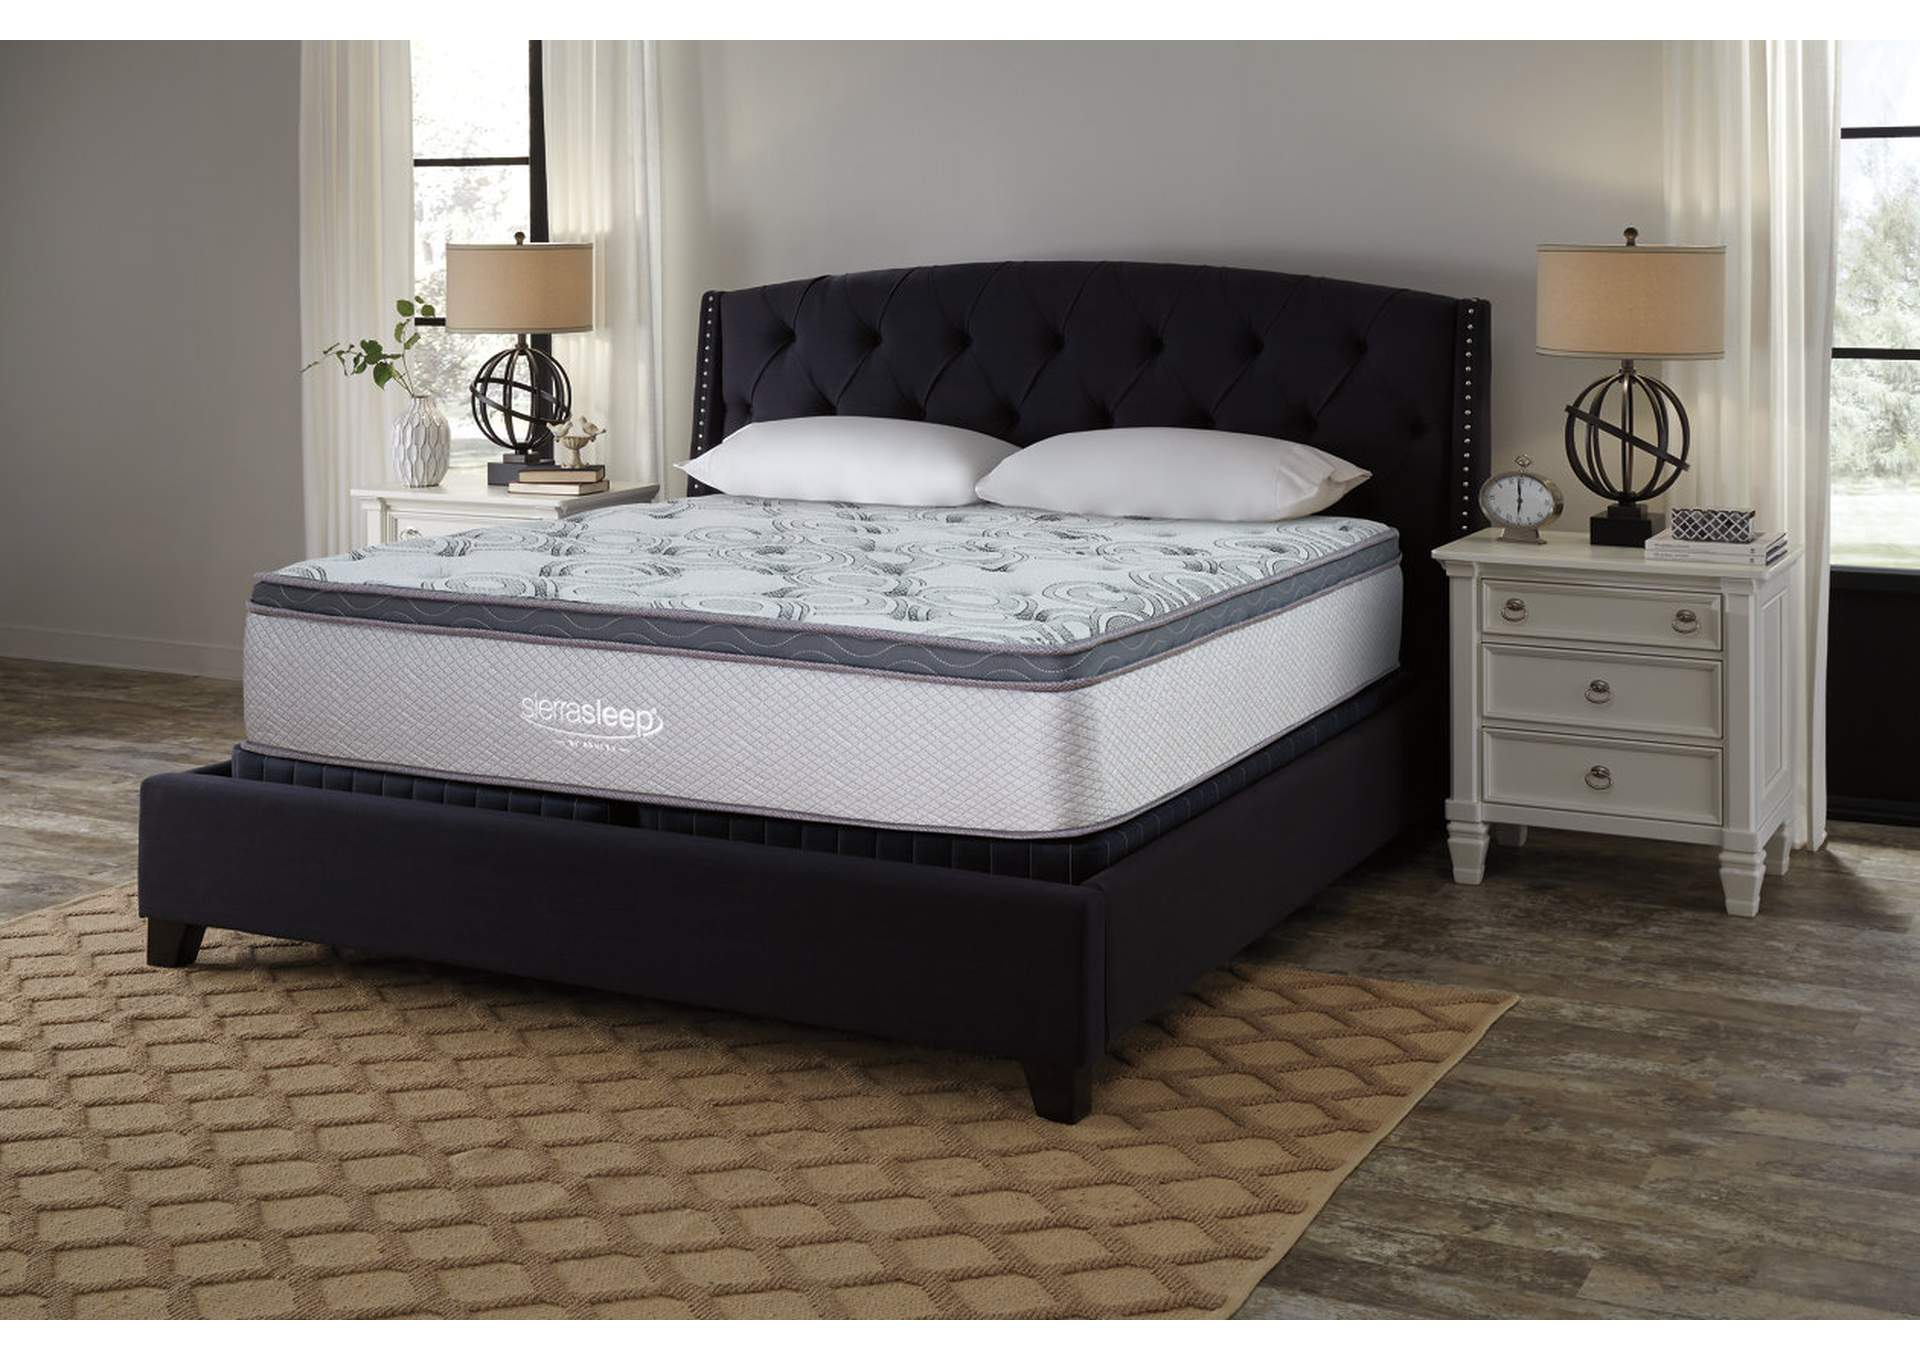 Augusta King Mattress,Direct To Consumer Express